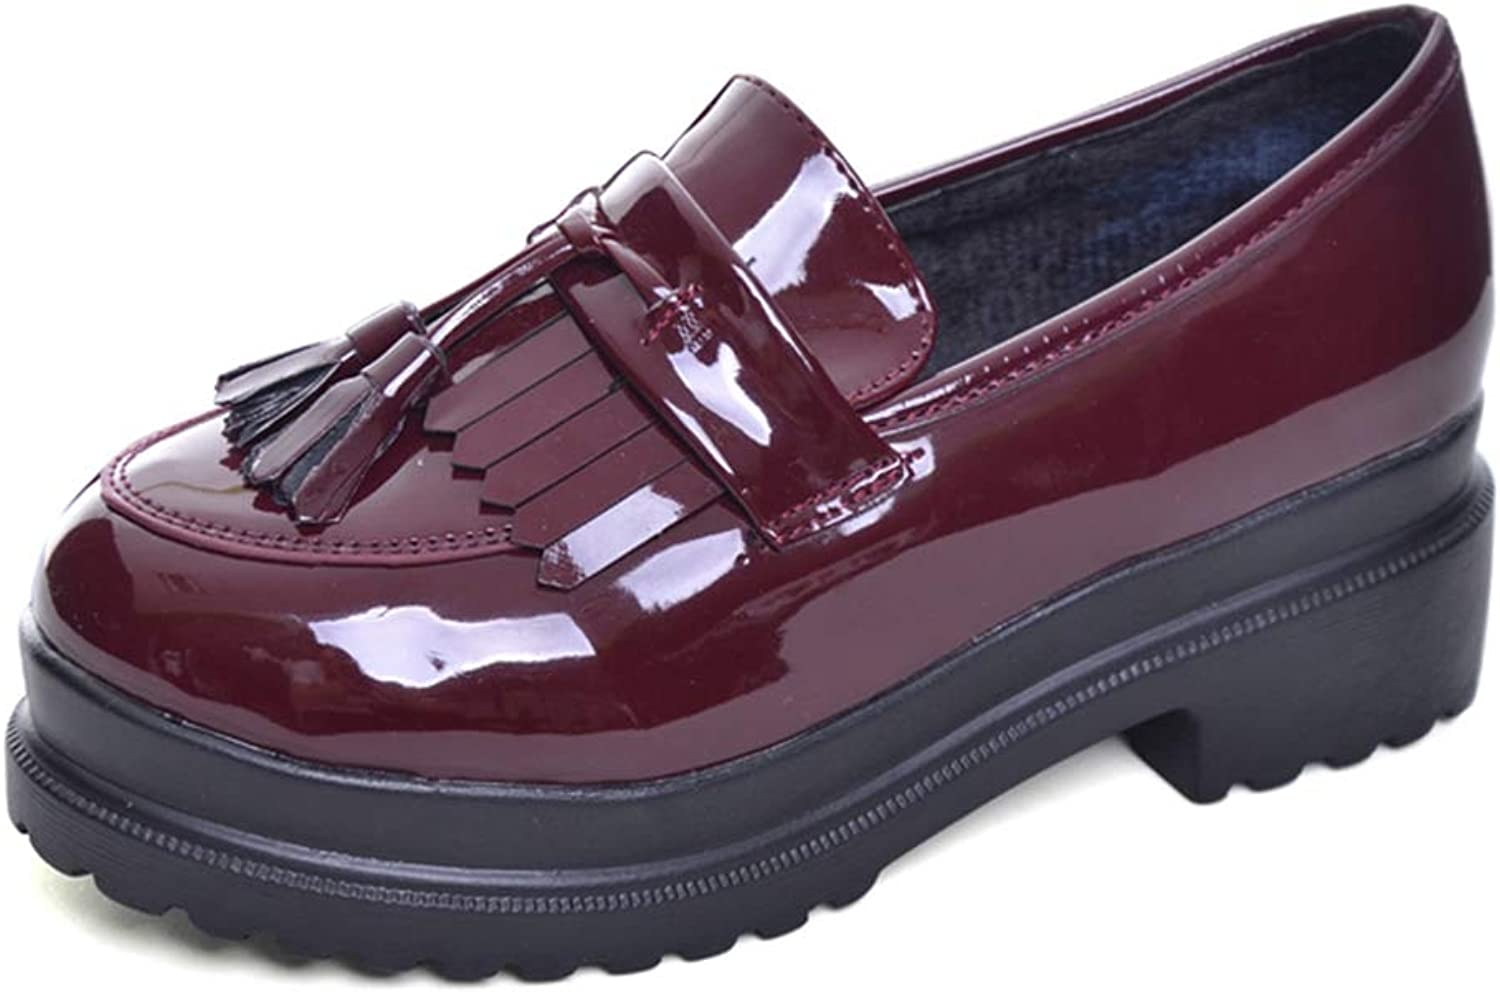 T-JULY New Women Oxfords British PU Patent Leather Platform Flats Spring Round Toe Slip-on Casual shoes